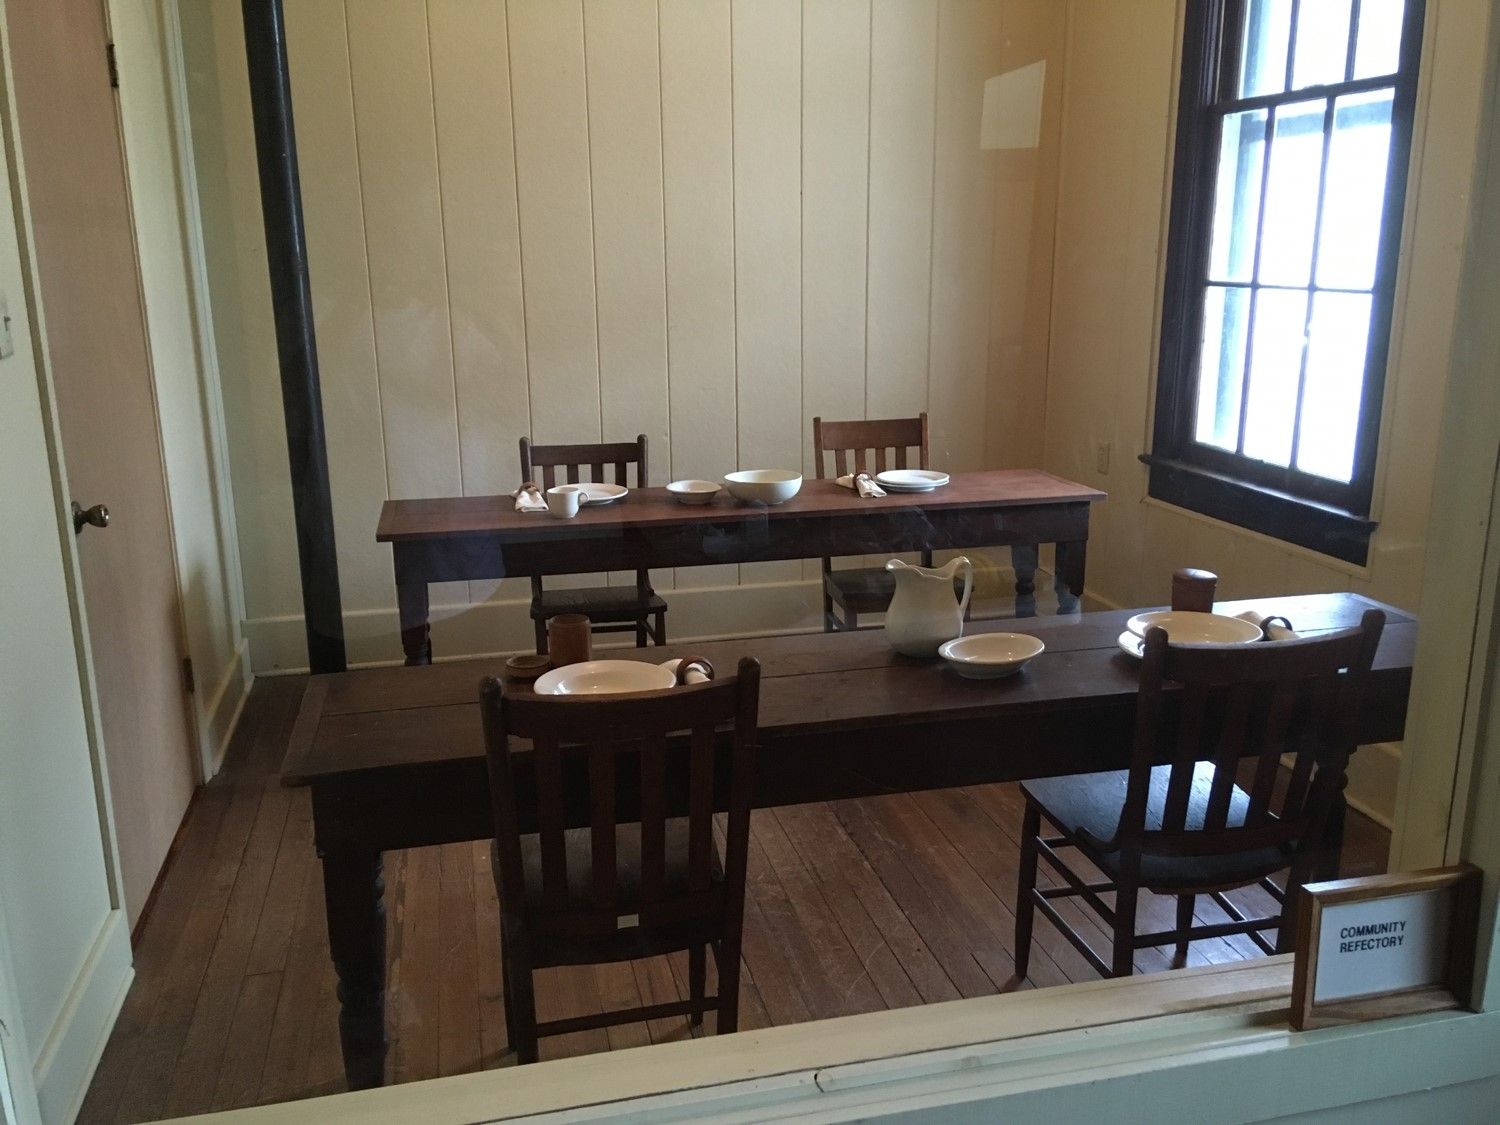 The Religious would eat together in the refectory. There was a long table where the superior and more senior Sisters ate and a number of other long bench tables where the other members of the community sat for meals.